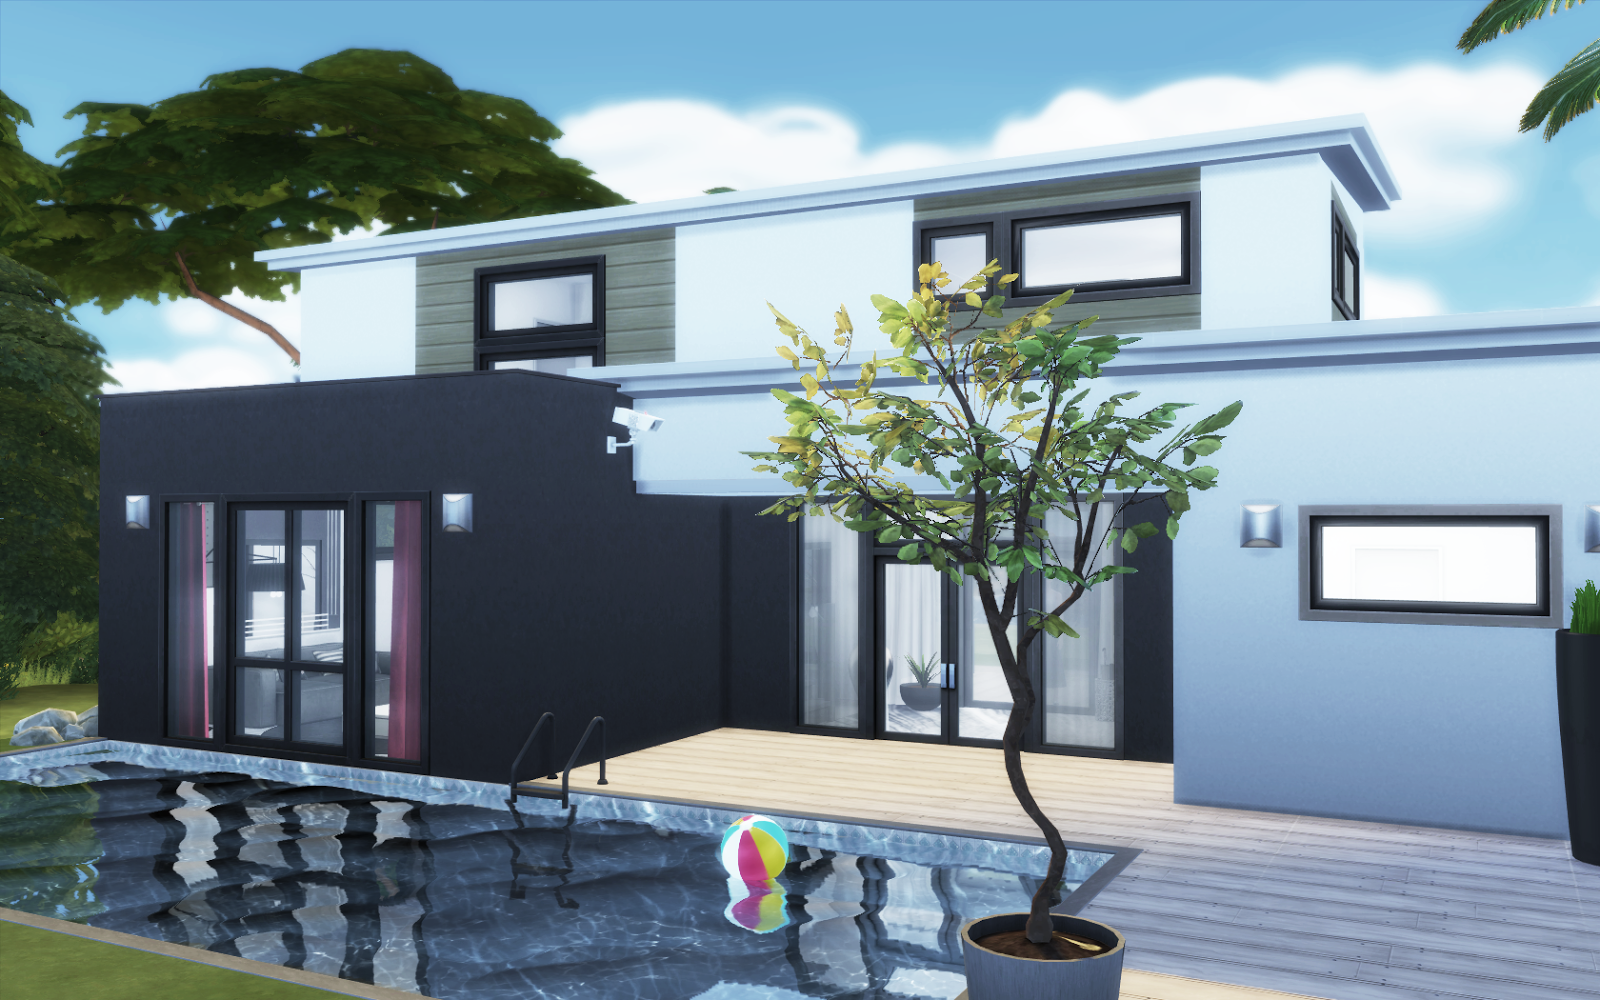 1359780 besides The Sims 4 Gallery Spotlight Houses 2 further Barons Mansion V2 By Tomostergreen At Tsr as well The Sims 4 Contemporary Modern House additionally High Tides No Problem For This Modern Beach House On Stilts. on sims 2 modern houses